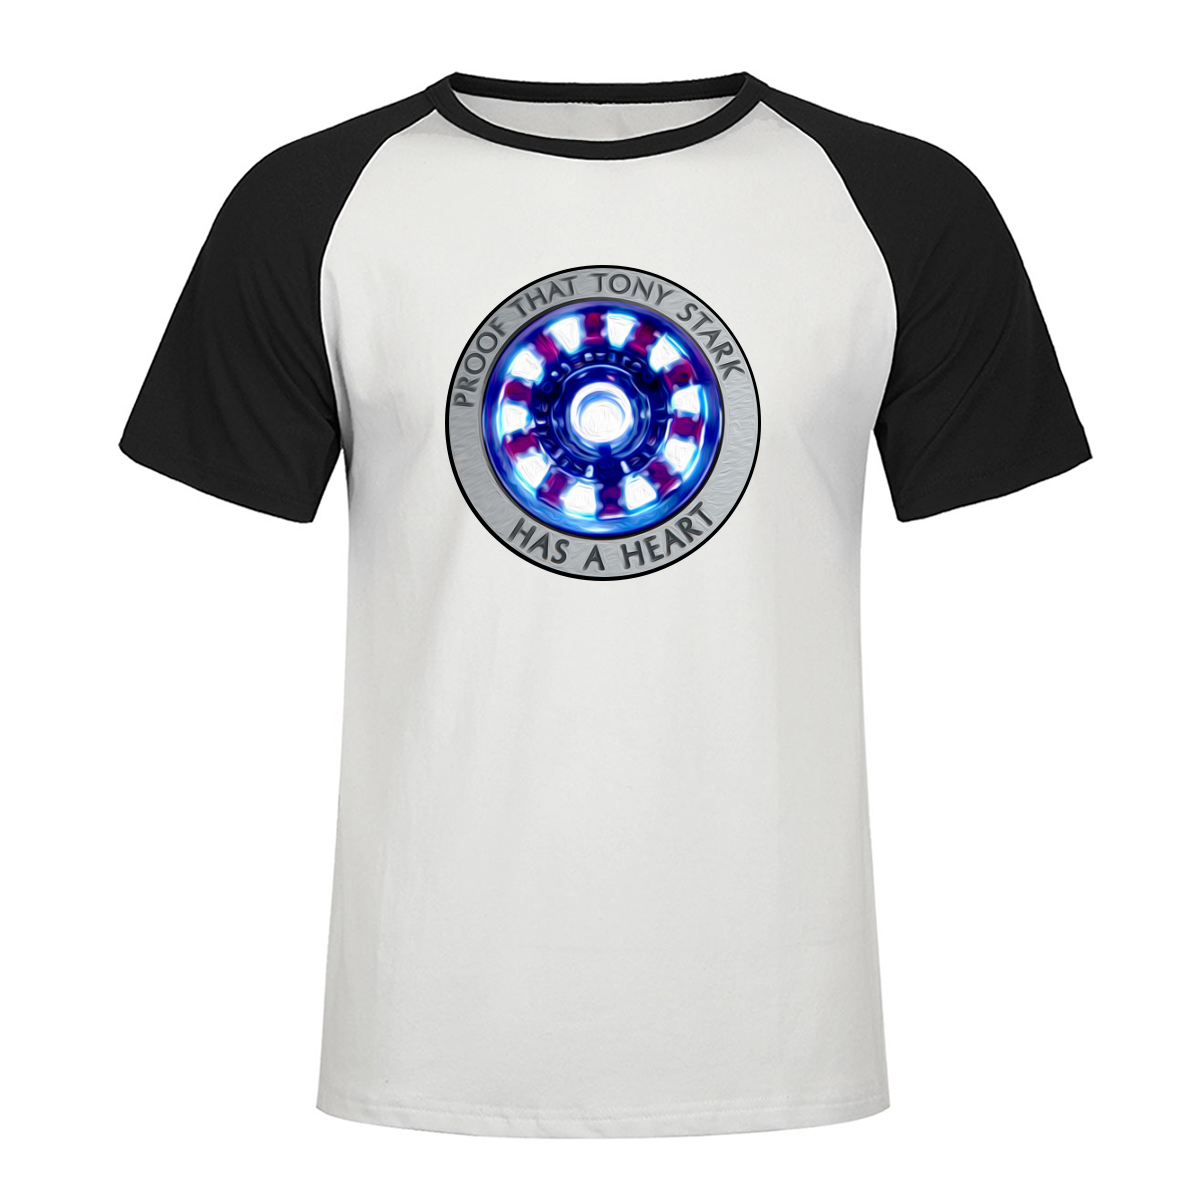 The Avengers Tony Stark Has A Heart Tshirt Ron Man Men Printed Raglan Tshirts 2019 Summer Cotton Short Sleeve Superhero T Shirt in T Shirts from Men 39 s Clothing